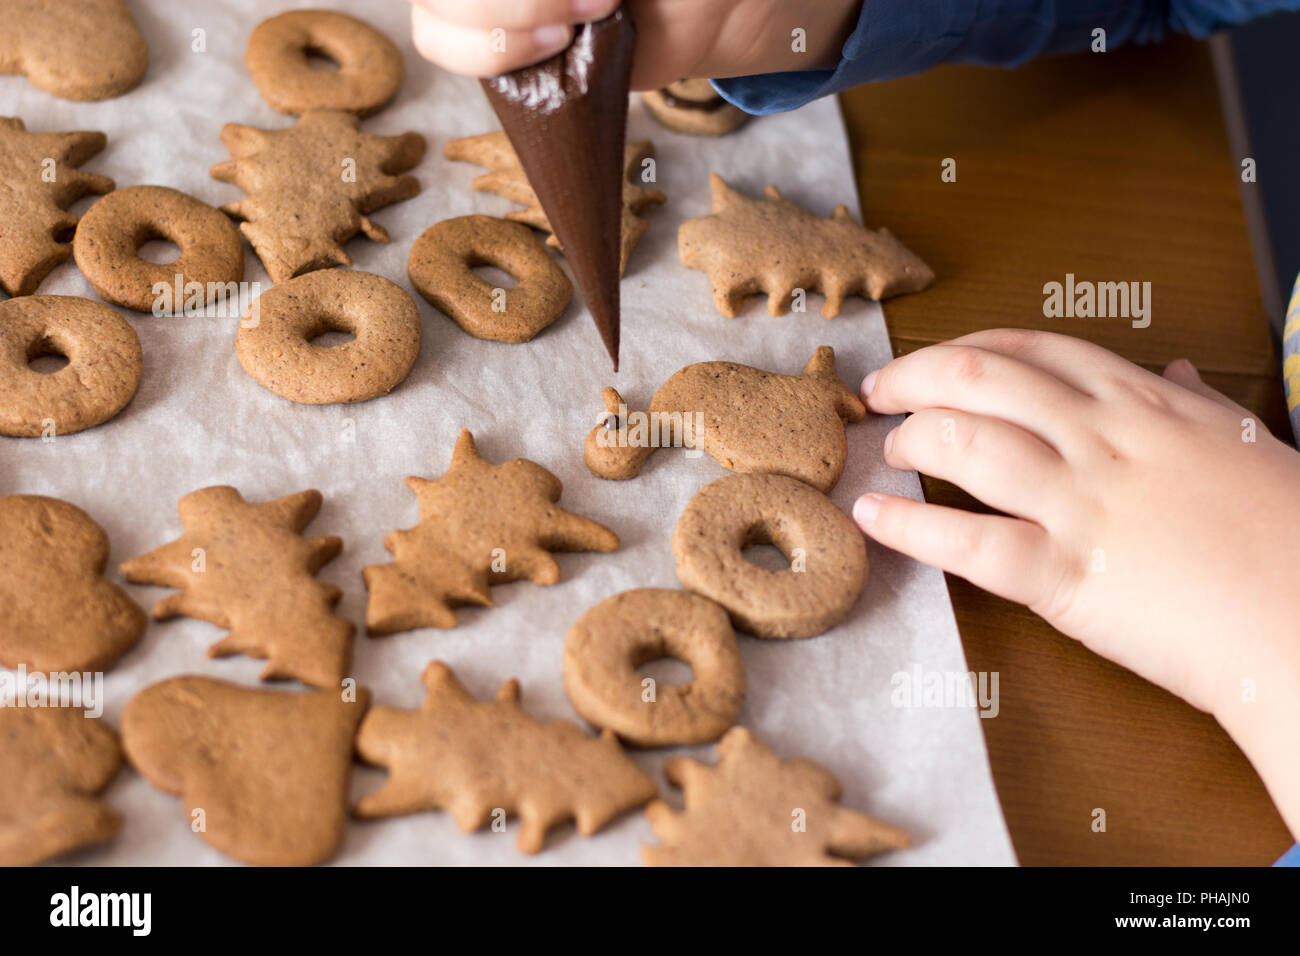 Boy decorating gingerbread cookies with chocolate - Stock Image